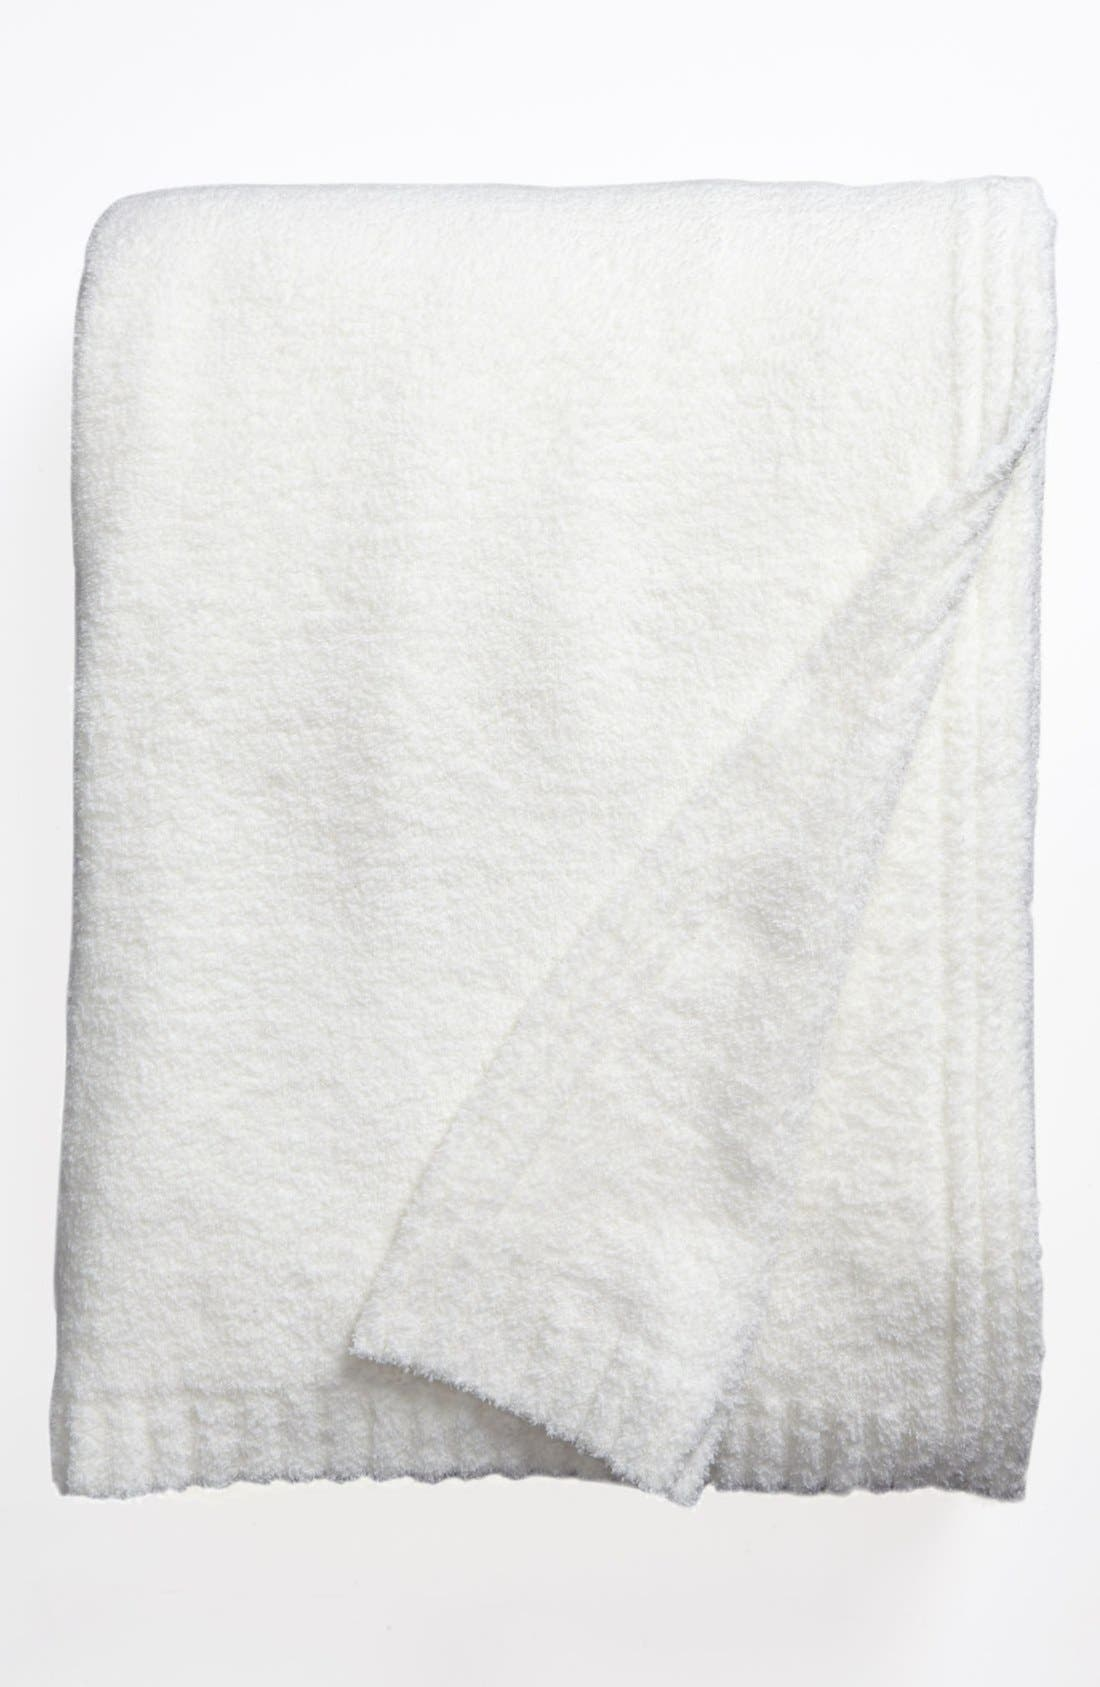 Alternate Image 1 Selected - Nordstrom at Home 'Butter' Knit Blanket